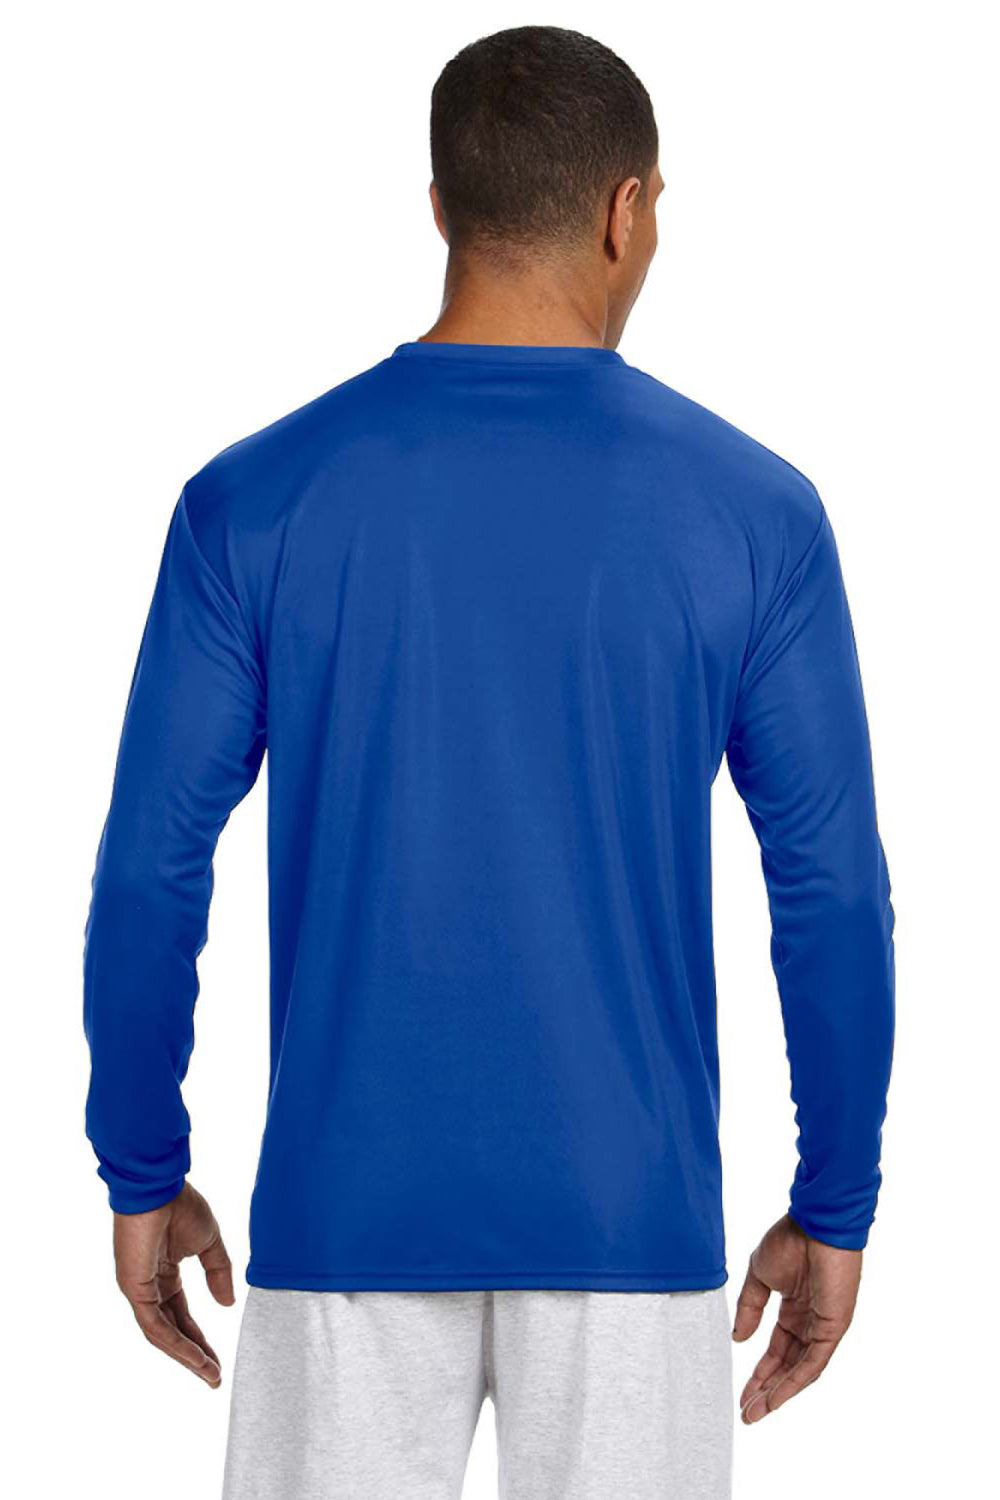 A4 N3165 Mens Cooling Performance Moisture Wicking Long Sleeve Crewneck T-Shirt Royal Blue Back